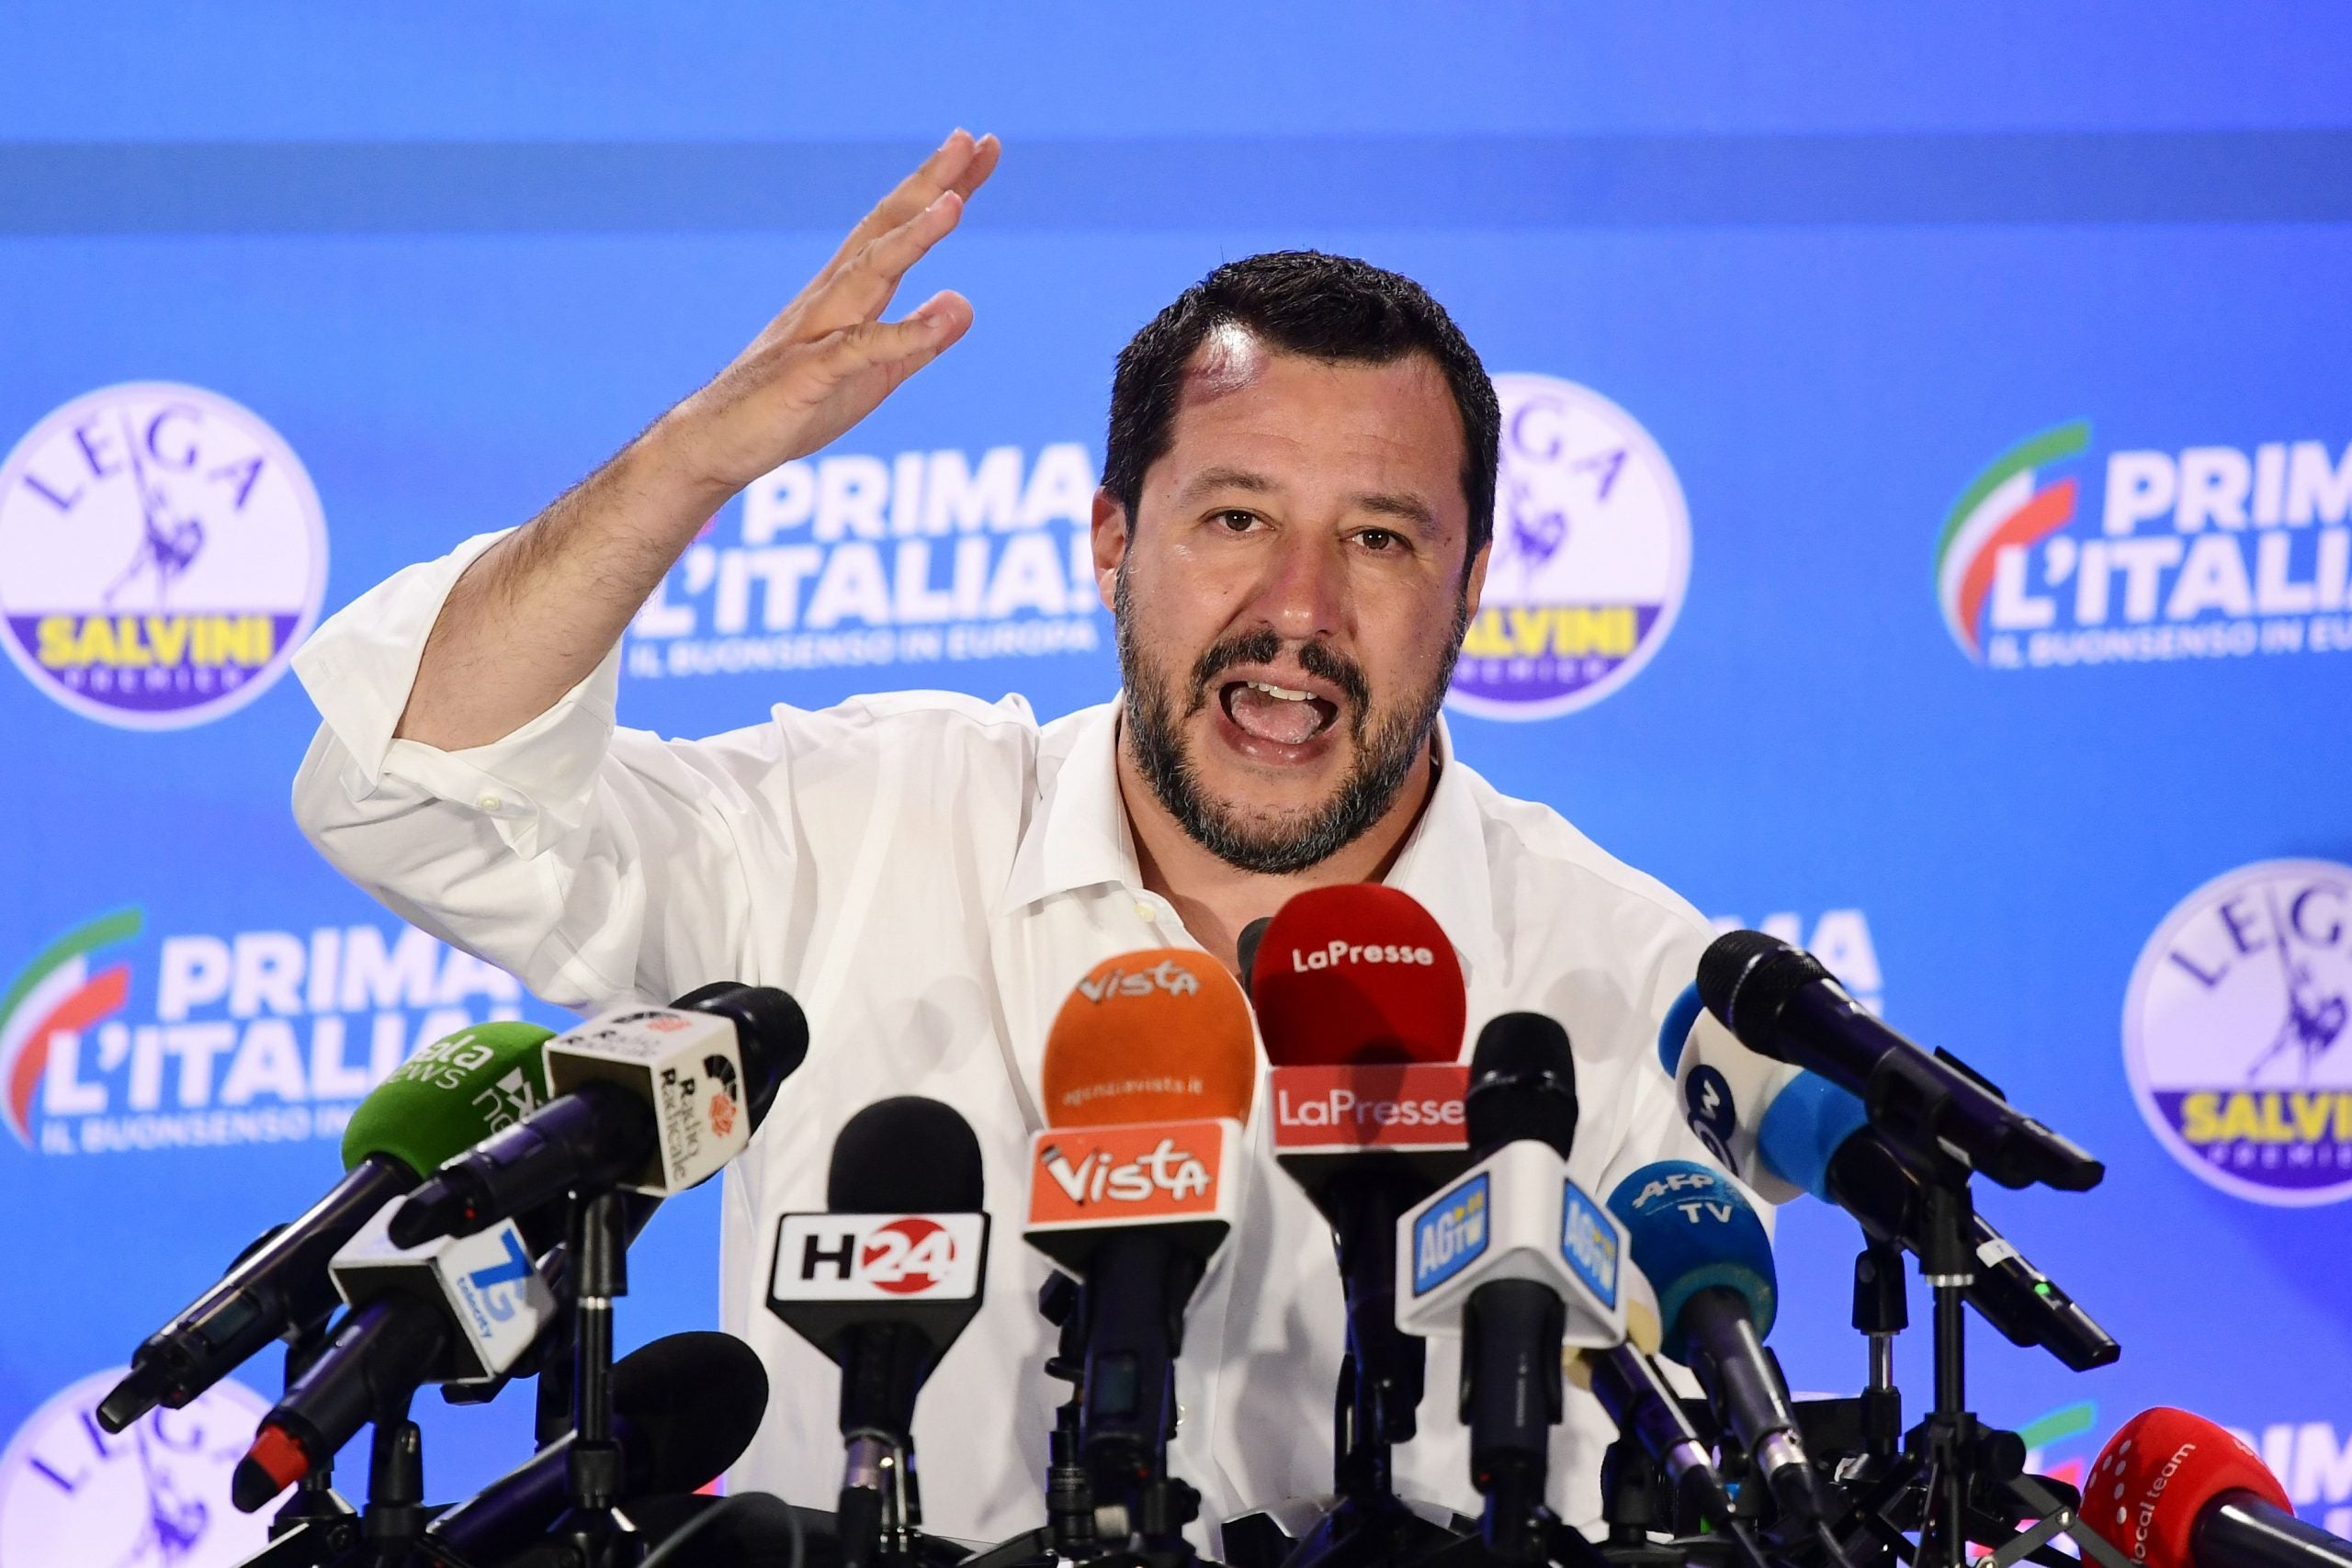 The fascist movement at the centre of Italy's culture war